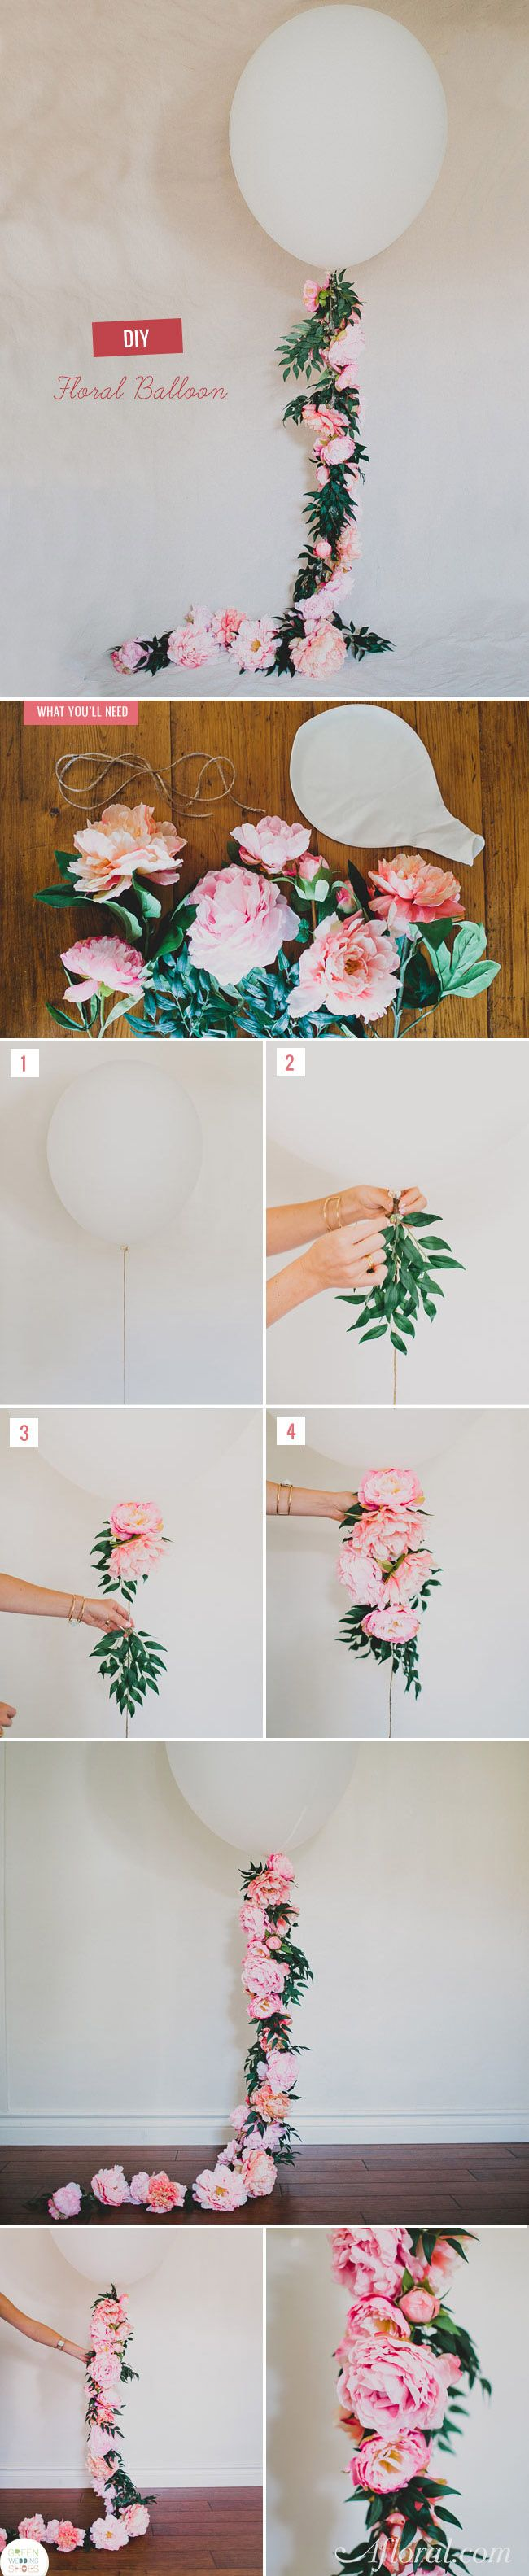 Best 25 wedding balloons ideas on pinterest diys with balloons diy floral balloon junglespirit Images